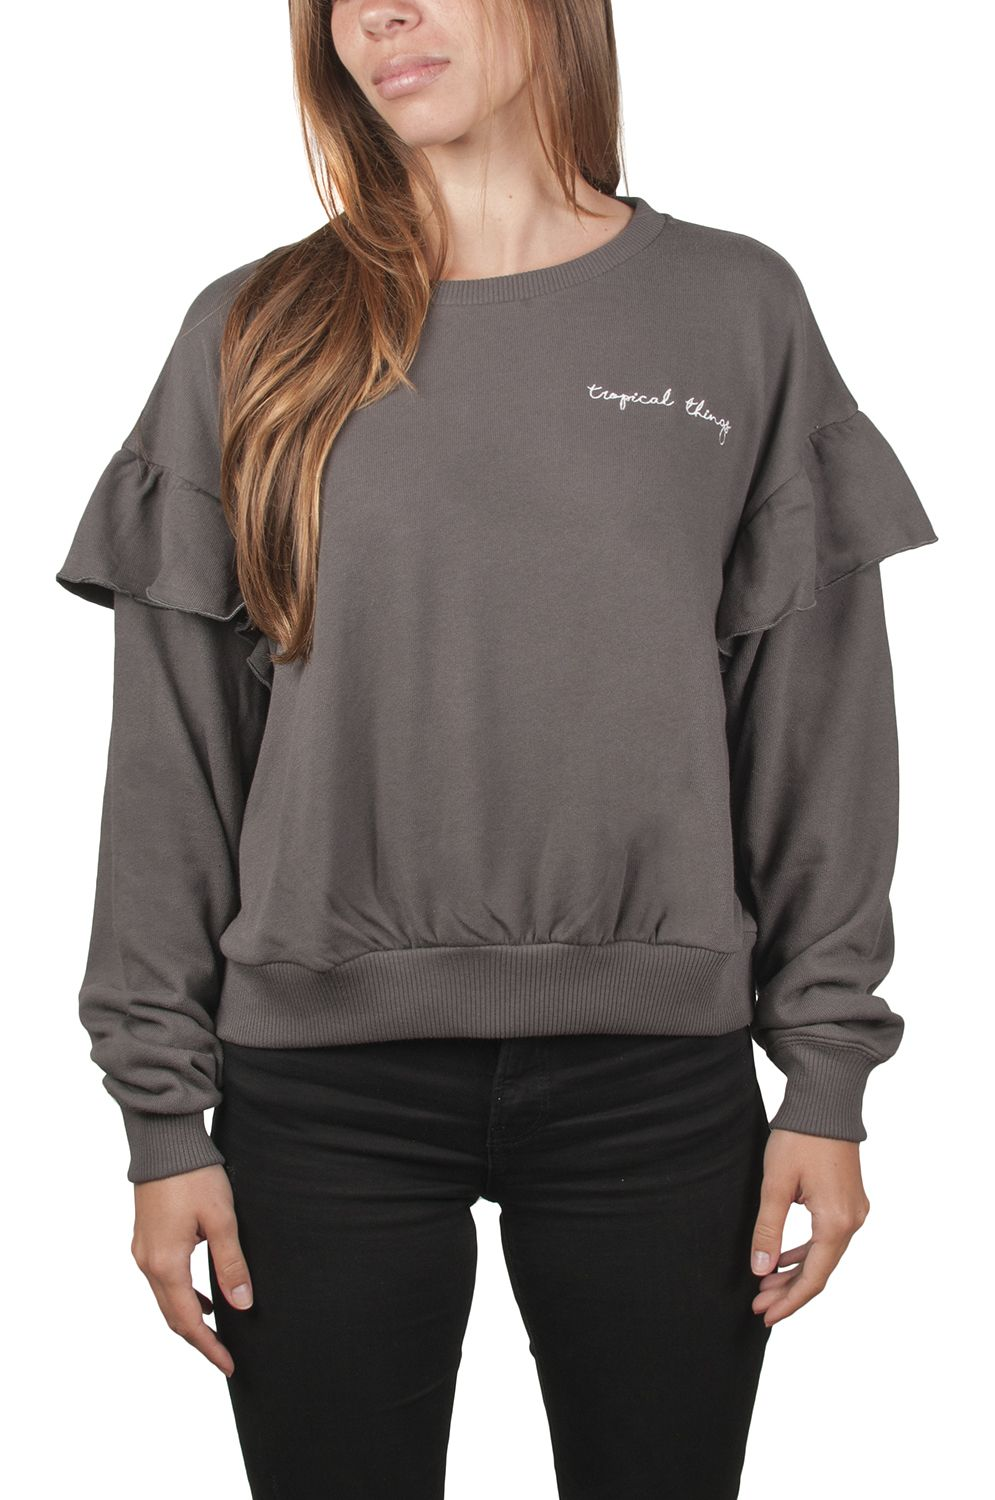 Sweat Basica Ericeira Surf Skate TROPICAL Charcoal